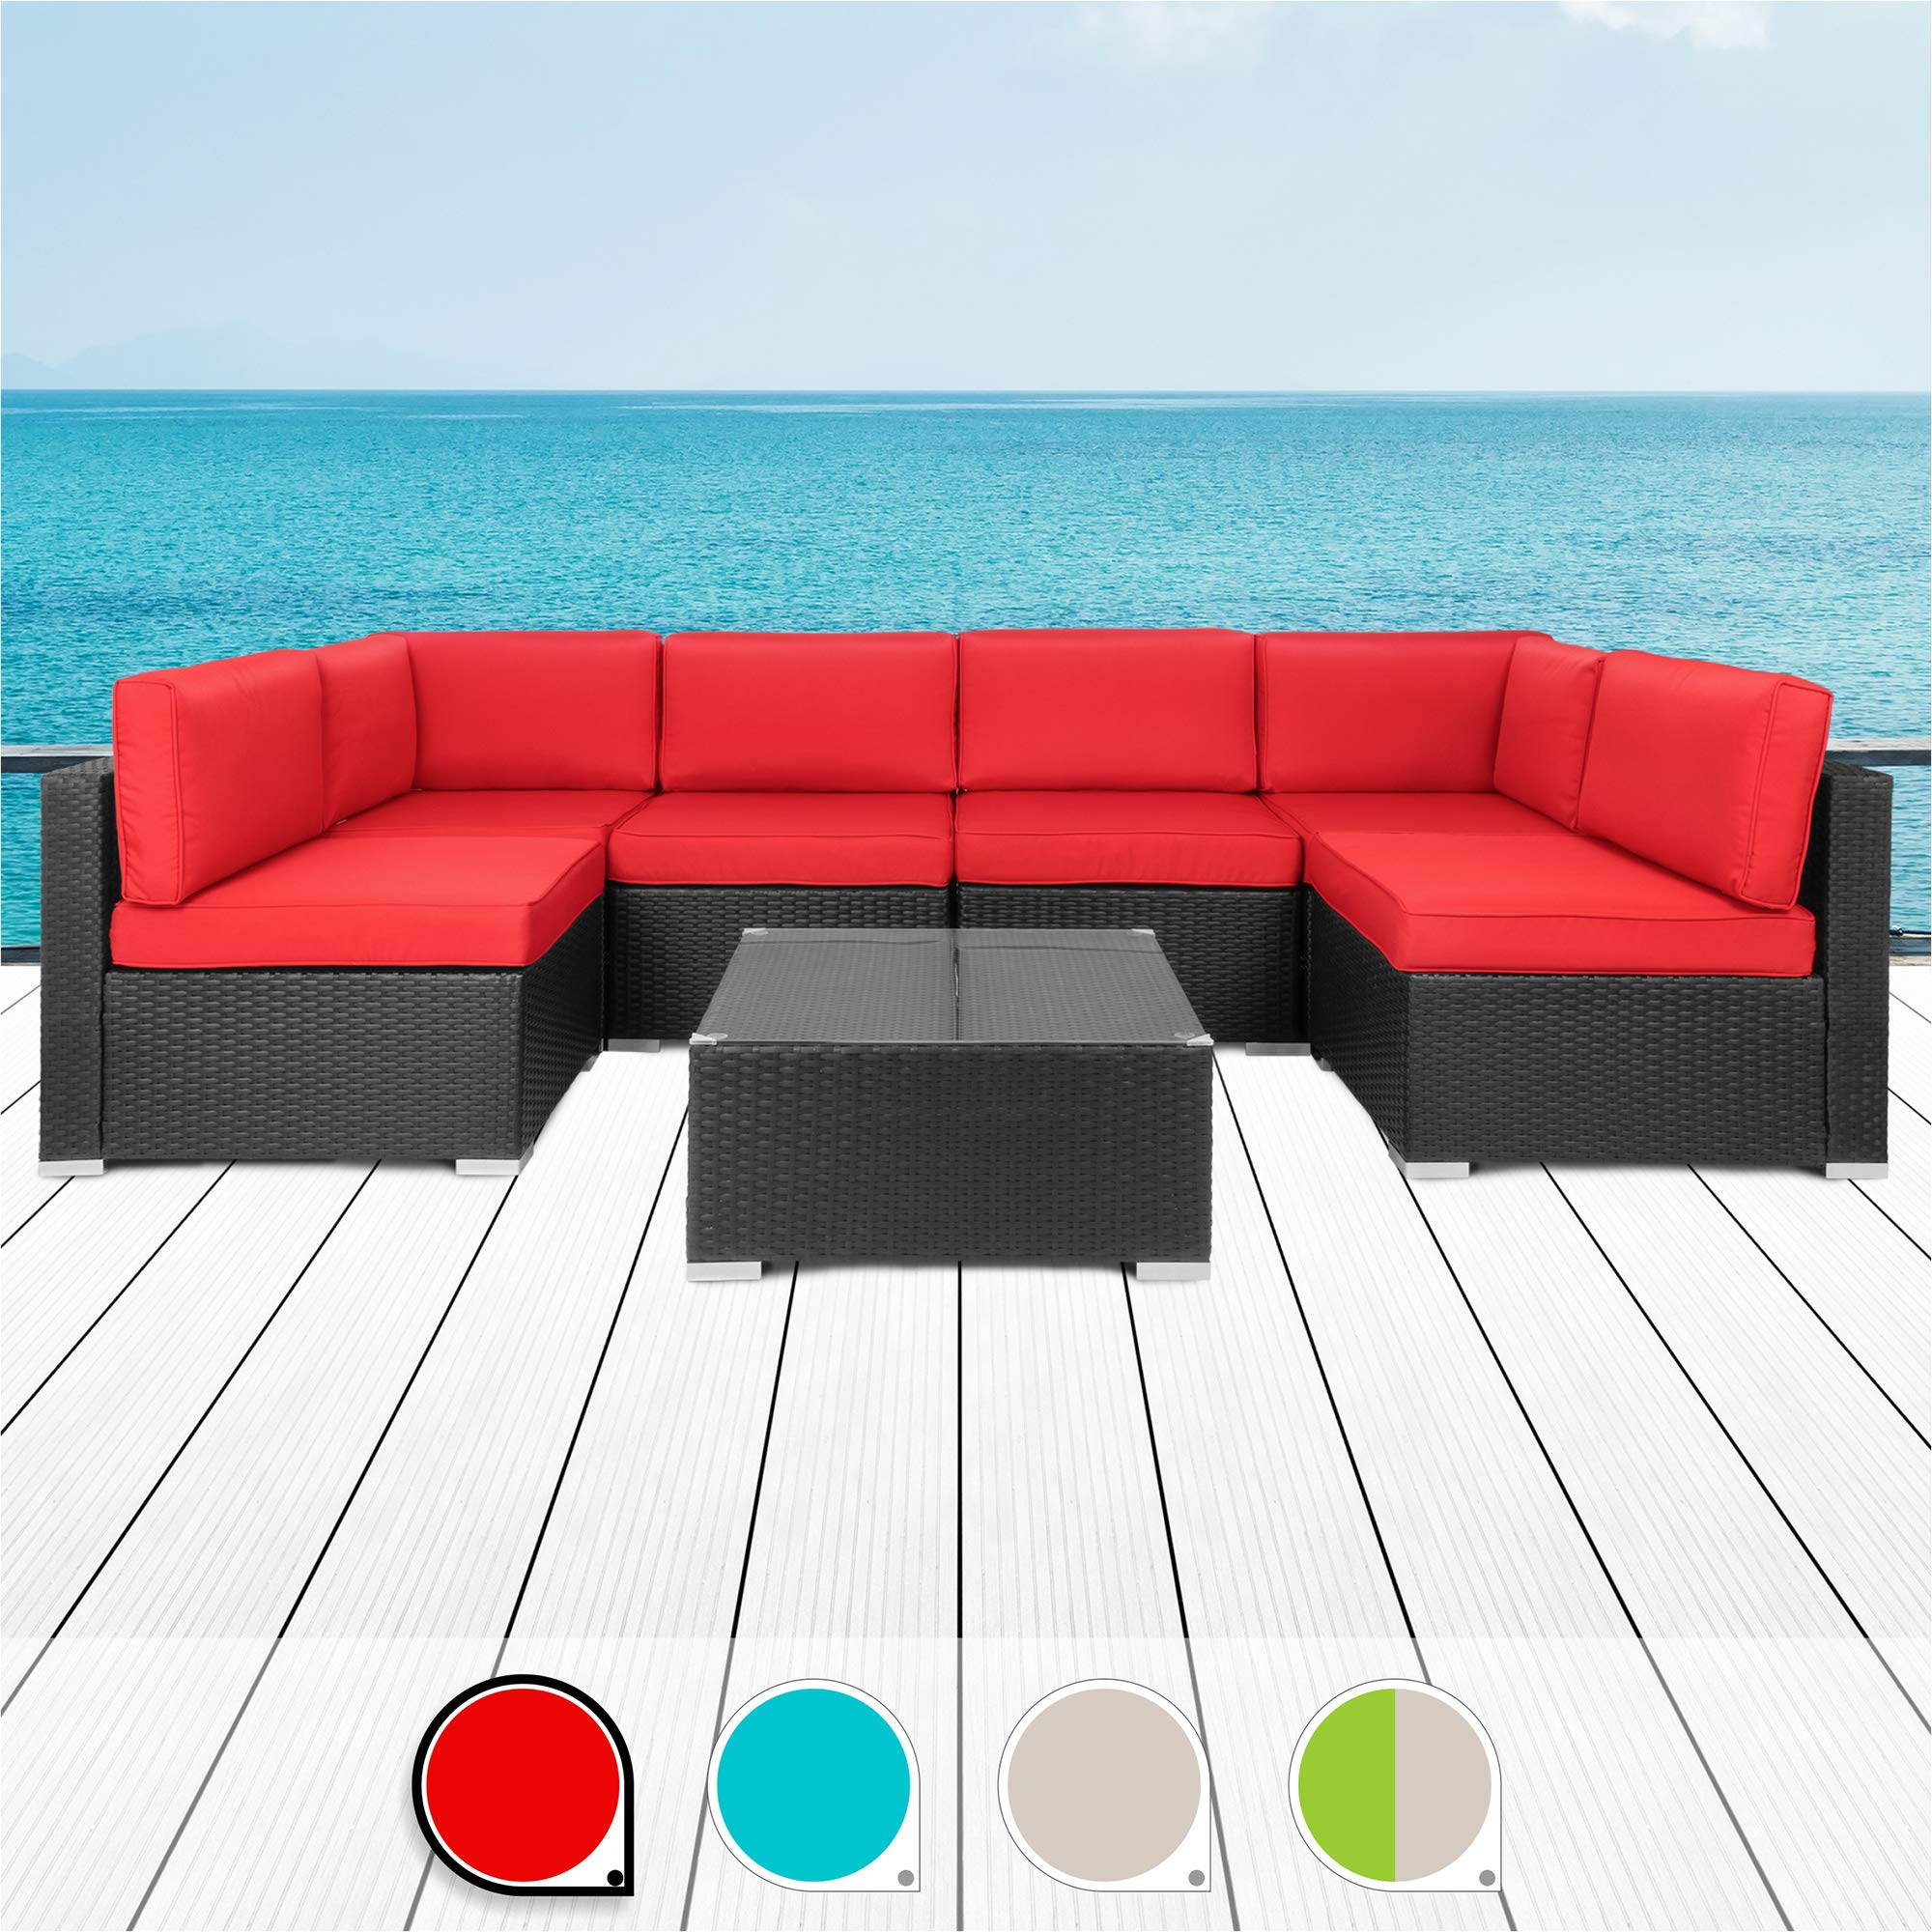 Walsunny 7pcs Patio Outdoor Furniture Sets,All-Weather Rattan Sectional Sofa with Tea Table&Washable Couch Cushions (Black Rattan (Red) by Walsunny